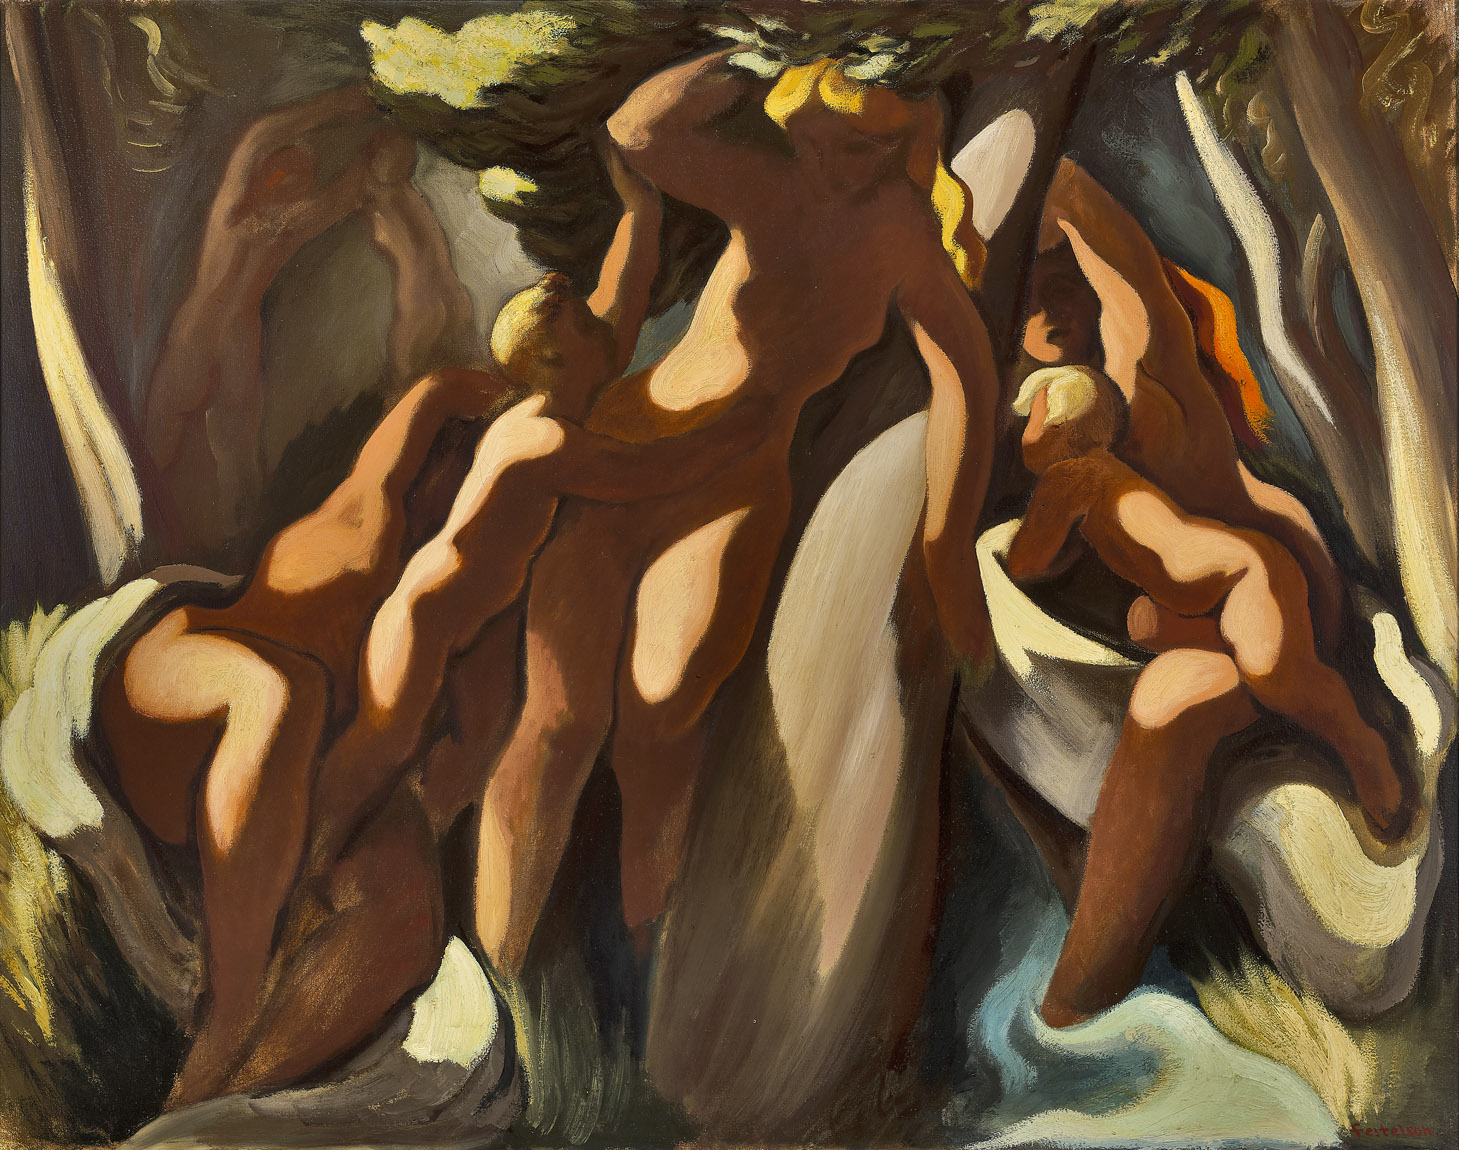 Bathers , 1942  oil on canvas 40 x 50 inches; 101.6 x 127 centimeters